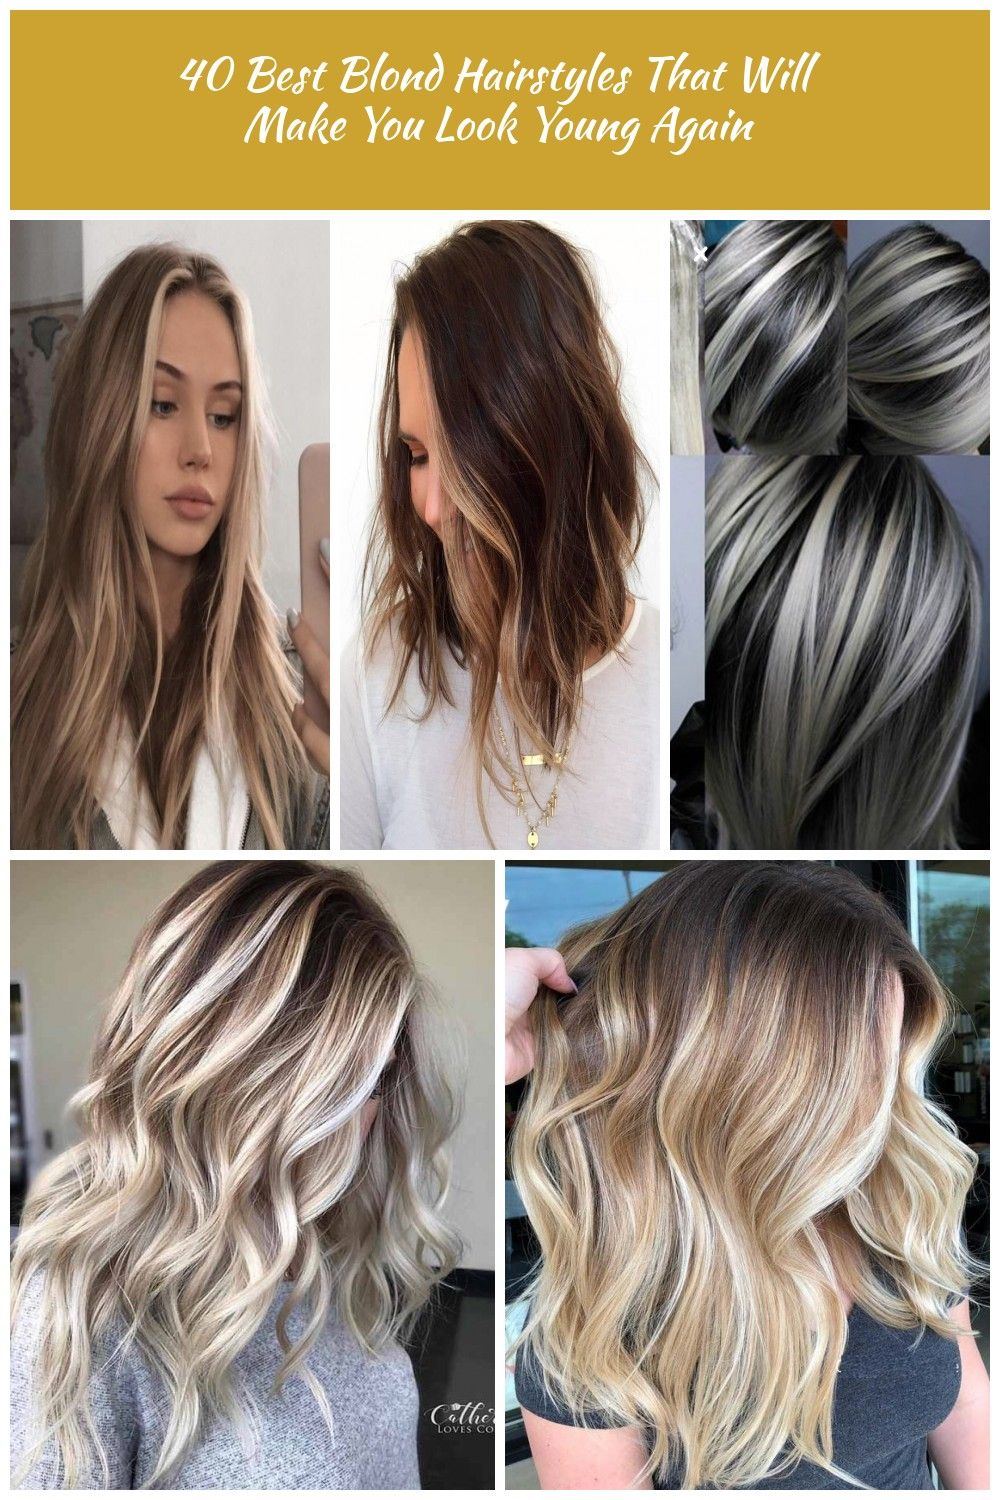 40 Amazing Blonde Hair Colors Hair Highlights 40 Best Blond Hairstyles That Will Make You Look Young Again Hair Styles Blonde Hair Color Hair Highlights